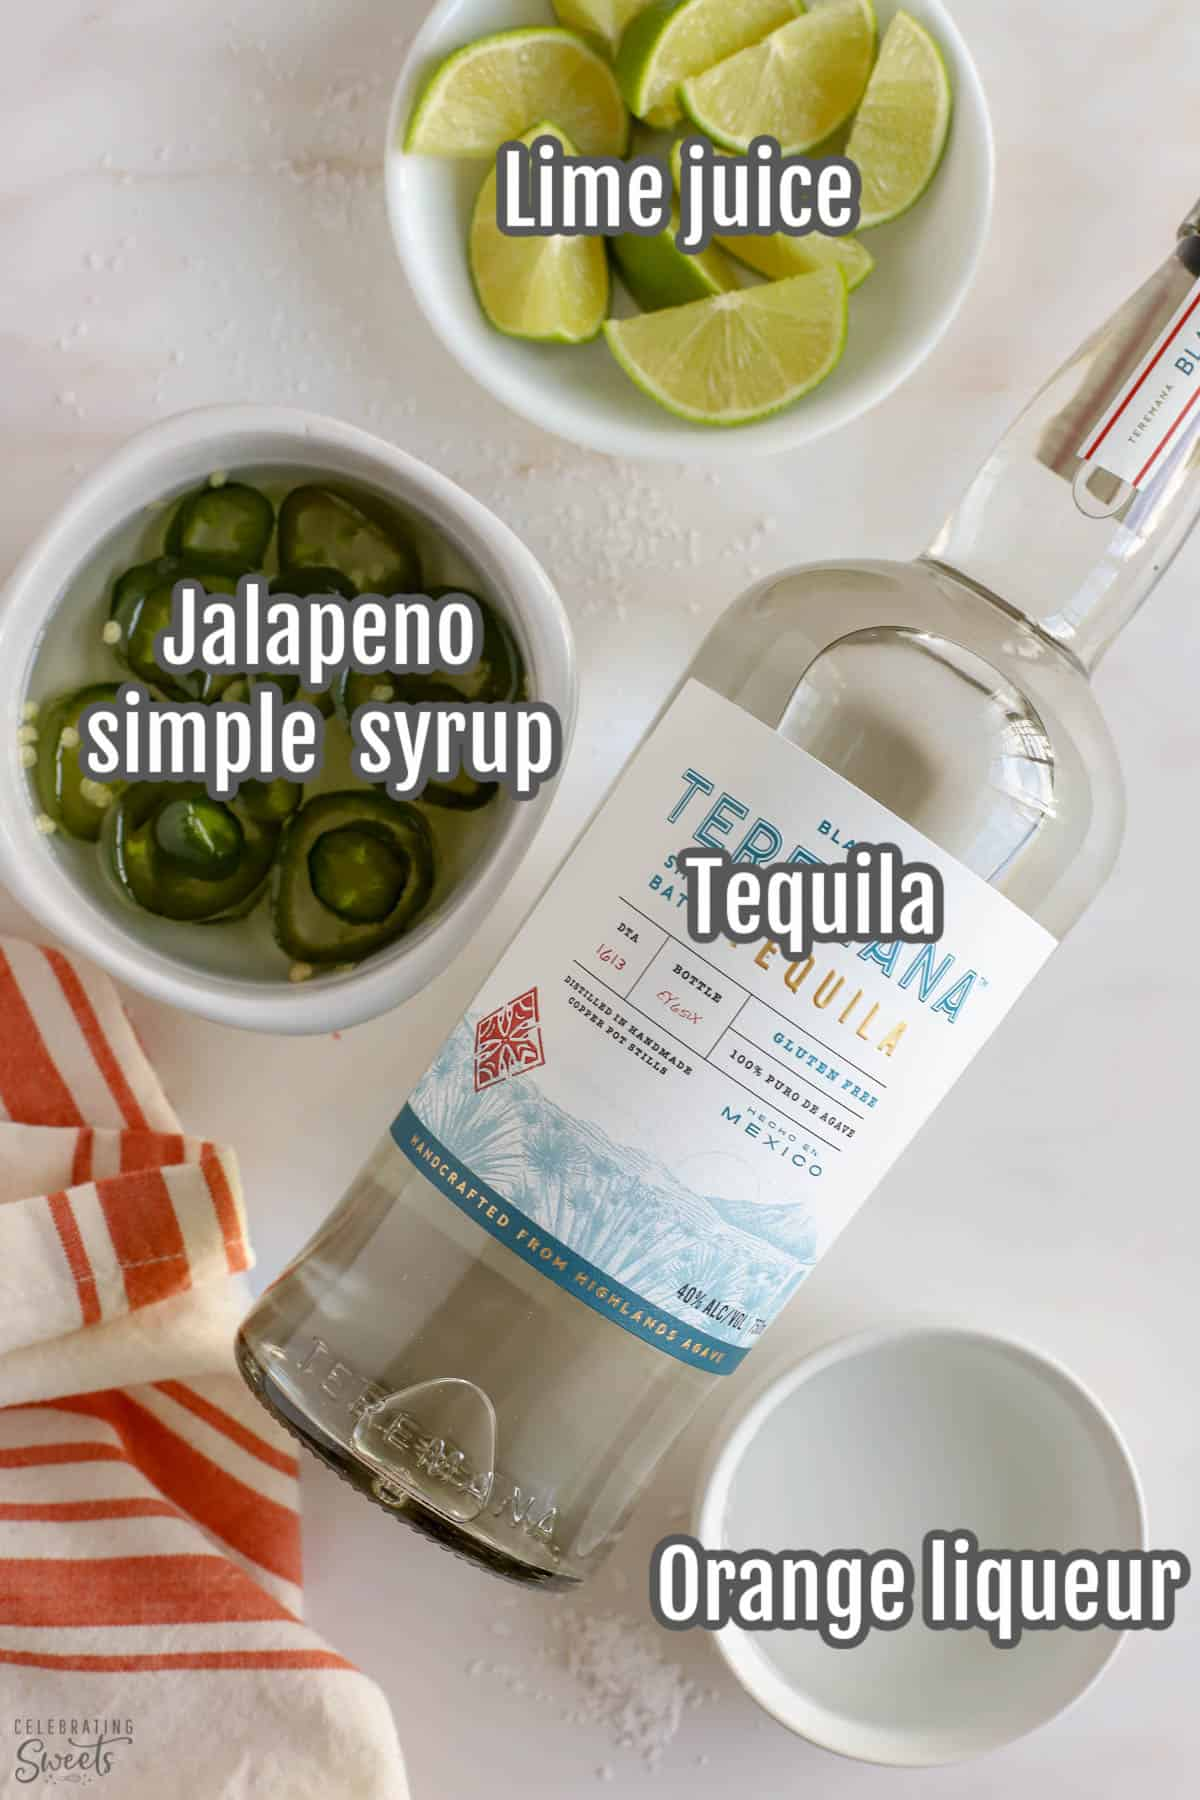 Ingredients for a spicy margarita: tequila, liqueur, limes, jalapeno syrup.